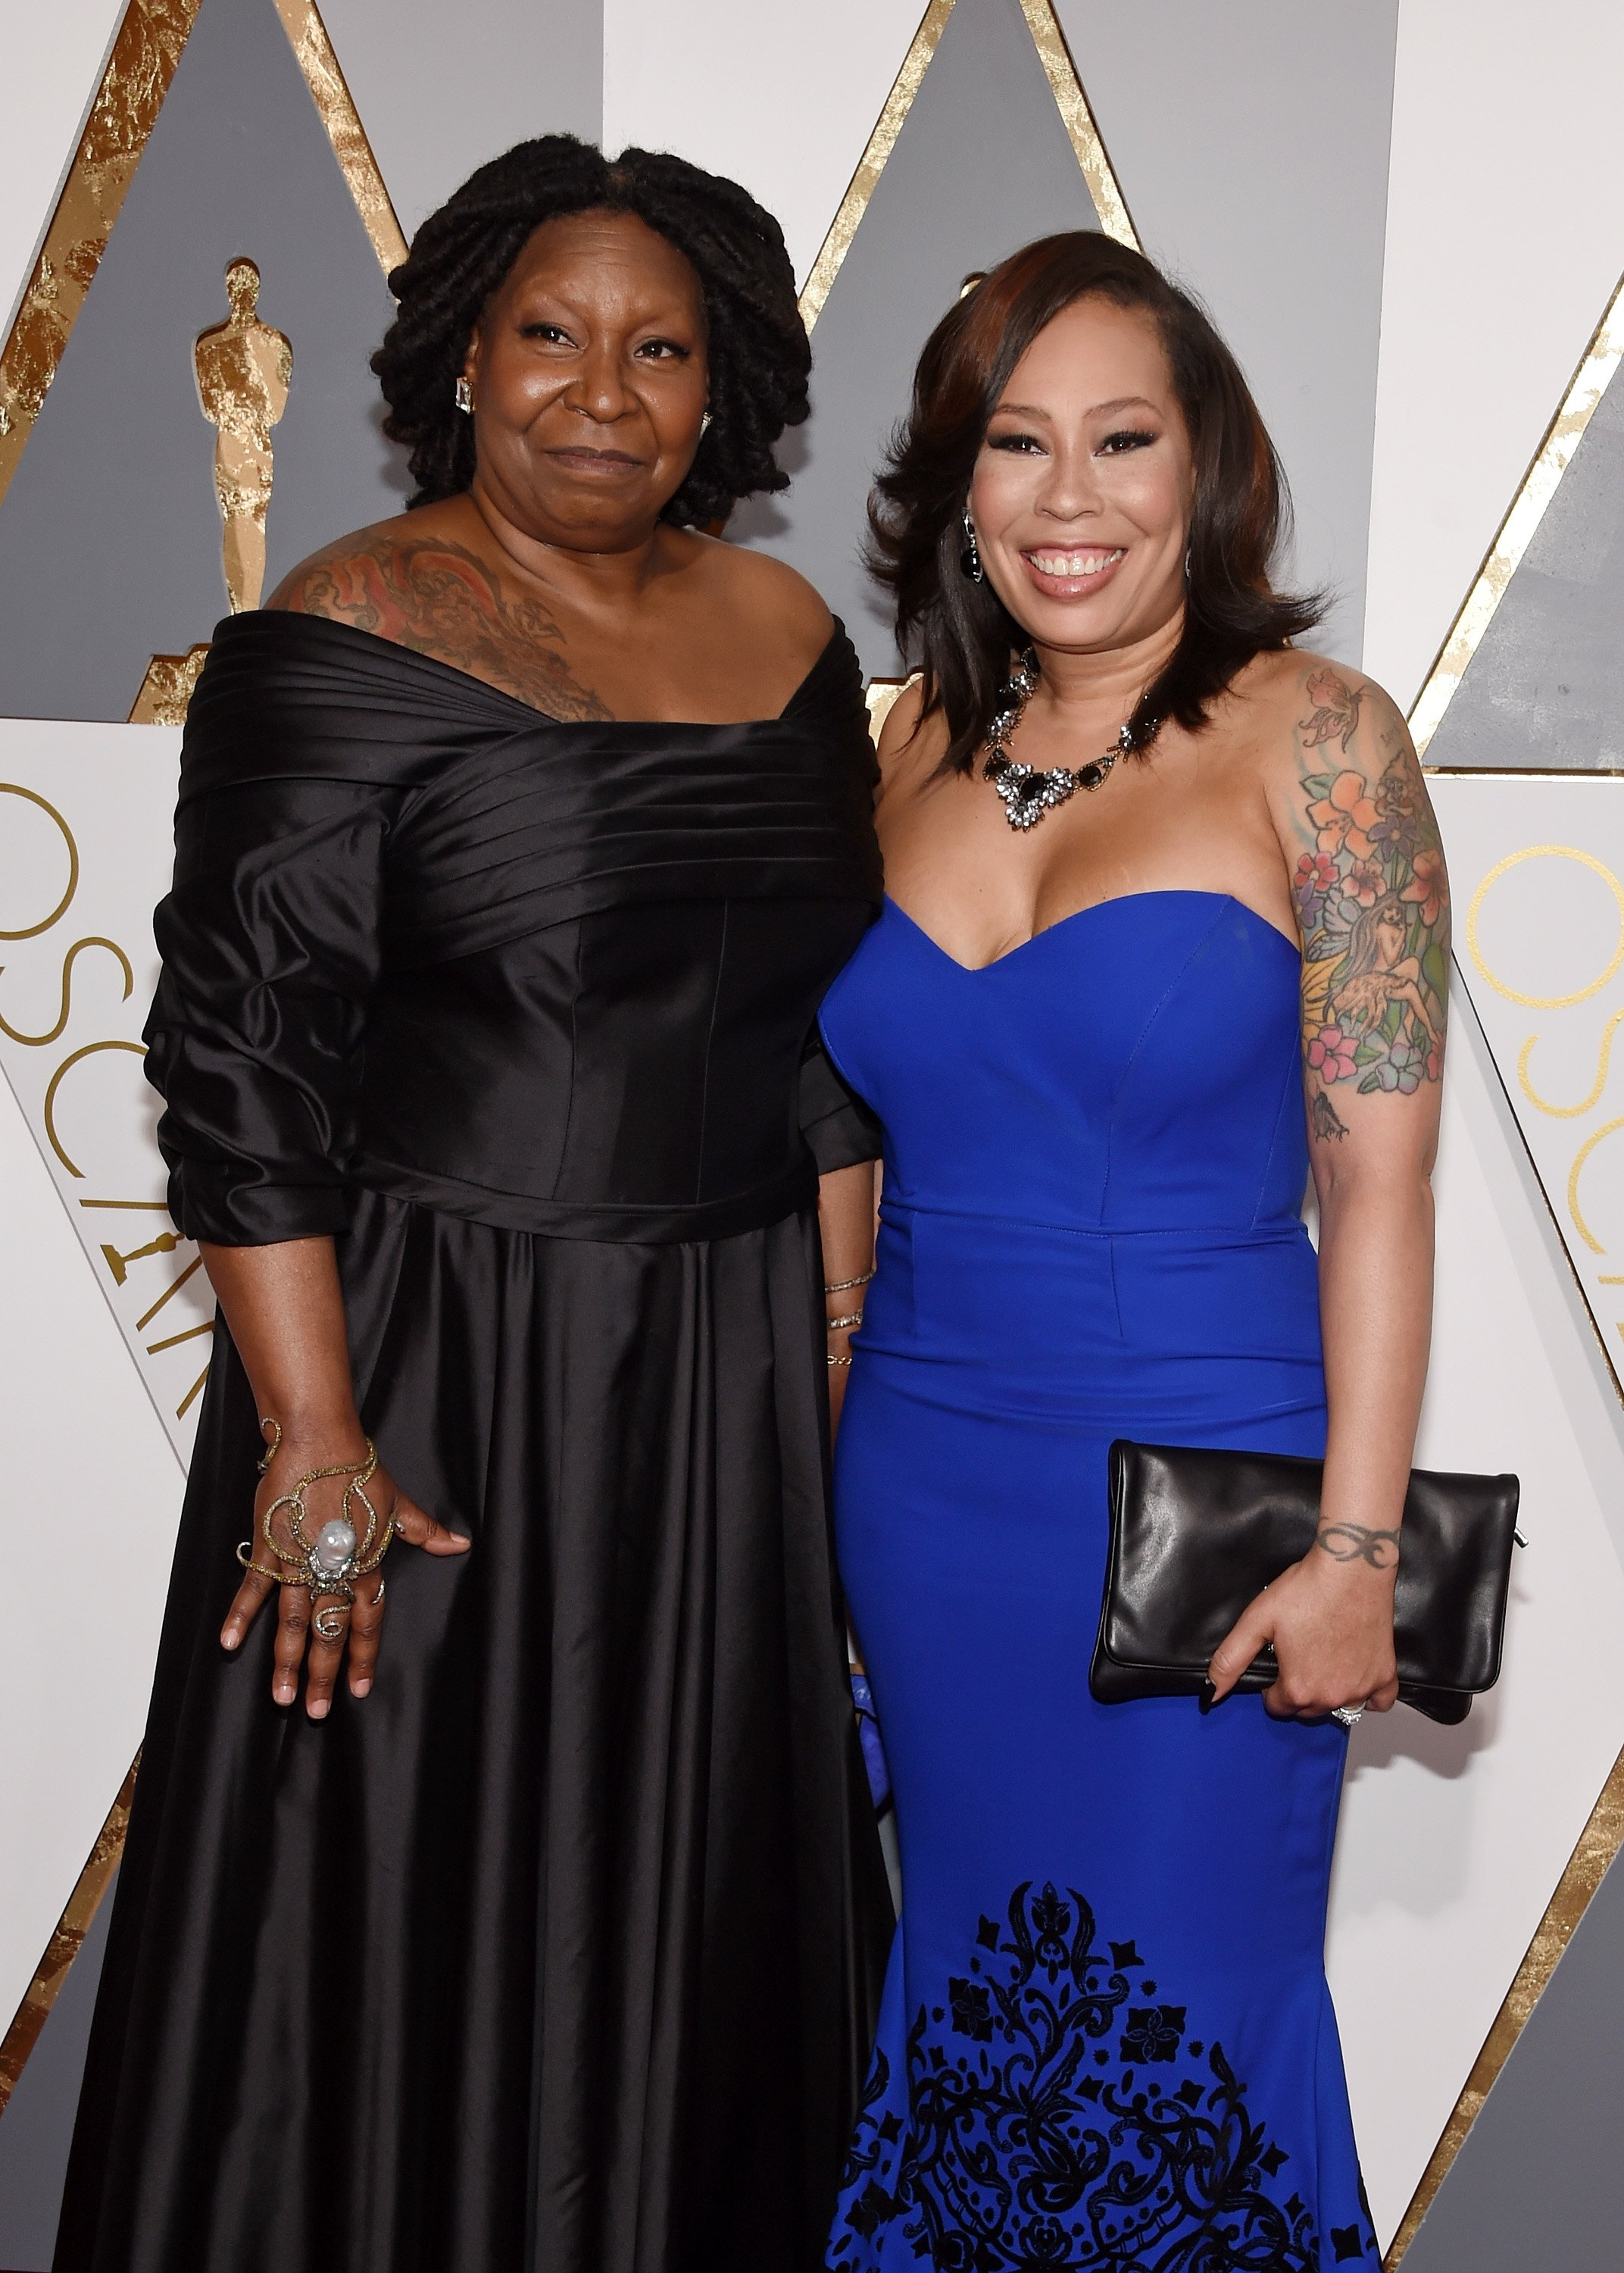 Actress Whoopi Goldberg and Alex Martin attend the 88th Annual Academy Awards   Photo: Getty Images